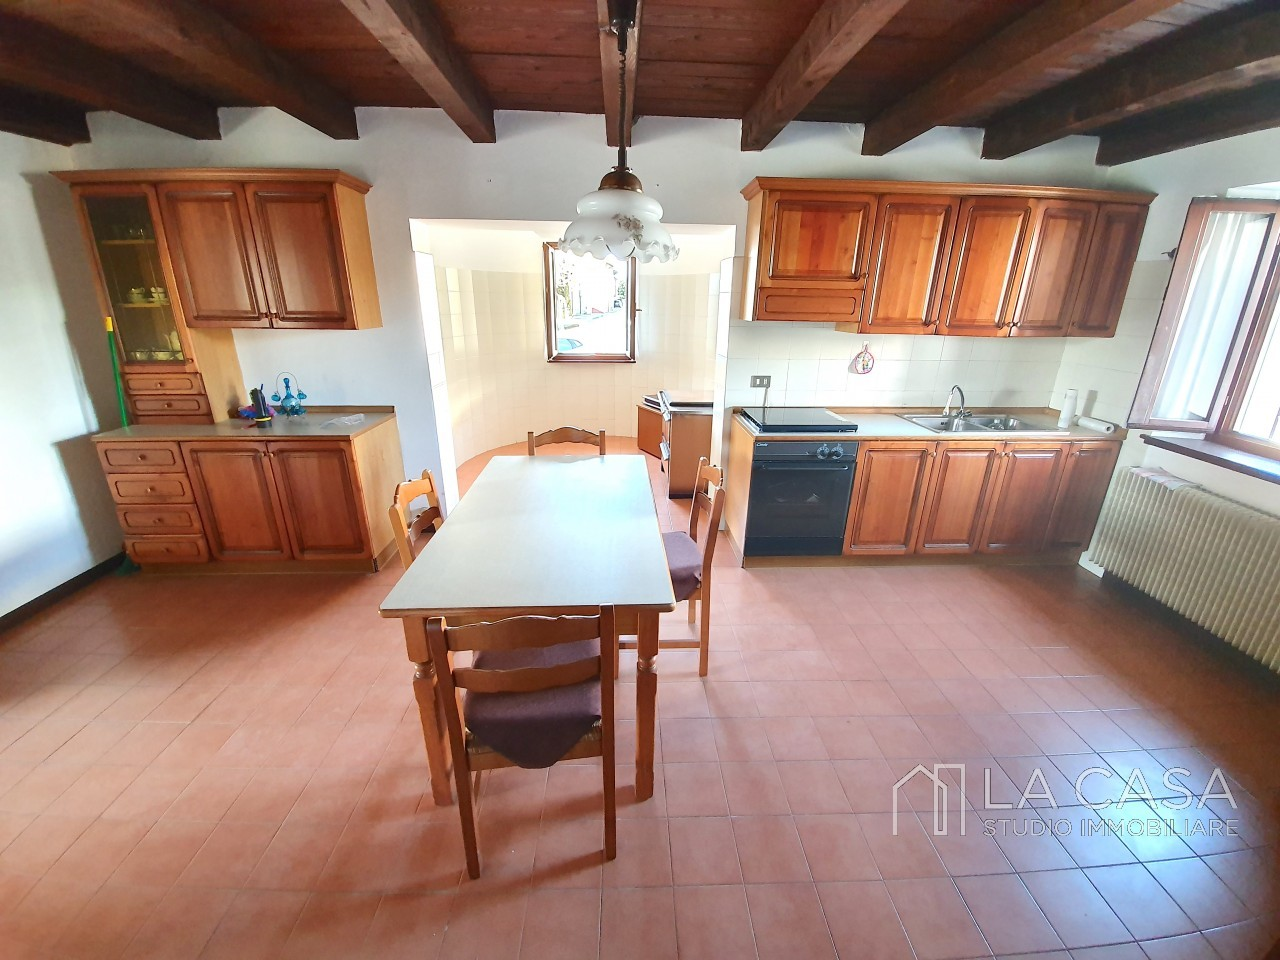 Casa indipendente in Linea - Rif.C6 https://images.gestionaleimmobiliare.it/foto/annunci/191125/2114313/1280x1280/007__20191125_115602_wmk_1.jpg